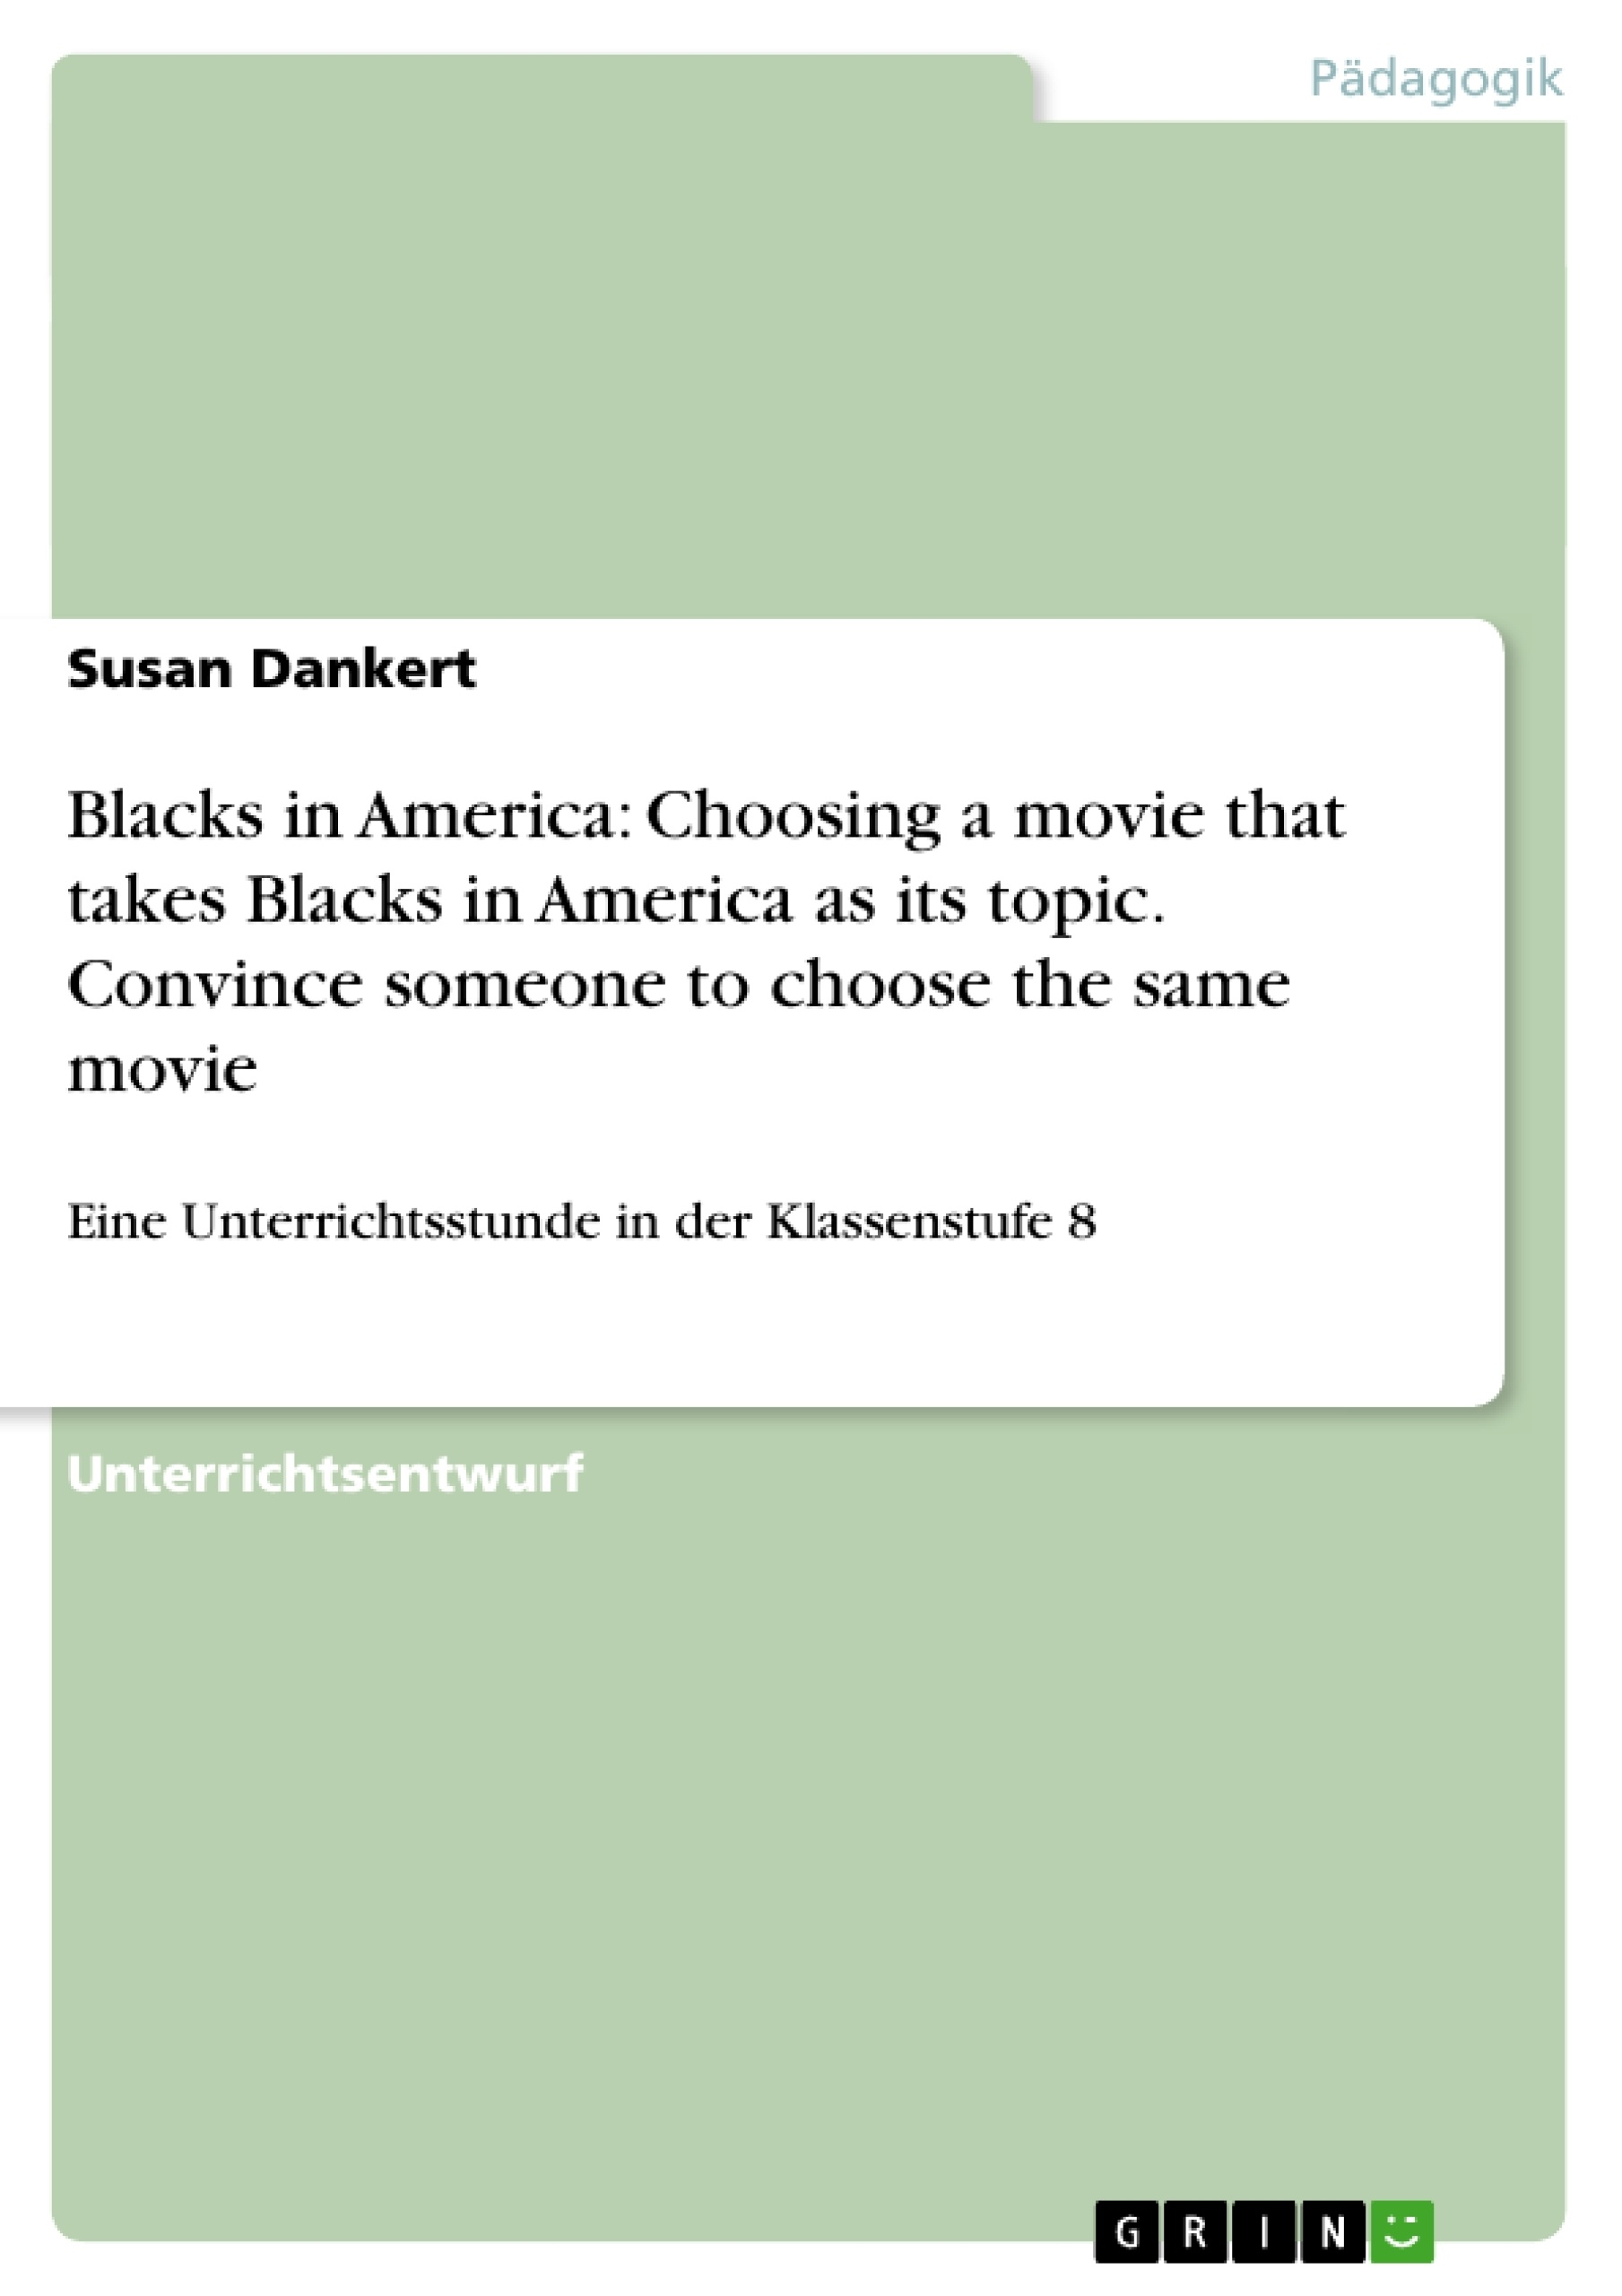 Titel: Blacks in America: Choosing a movie that takes Blacks in America as its topic. Convince someone to choose the same movie